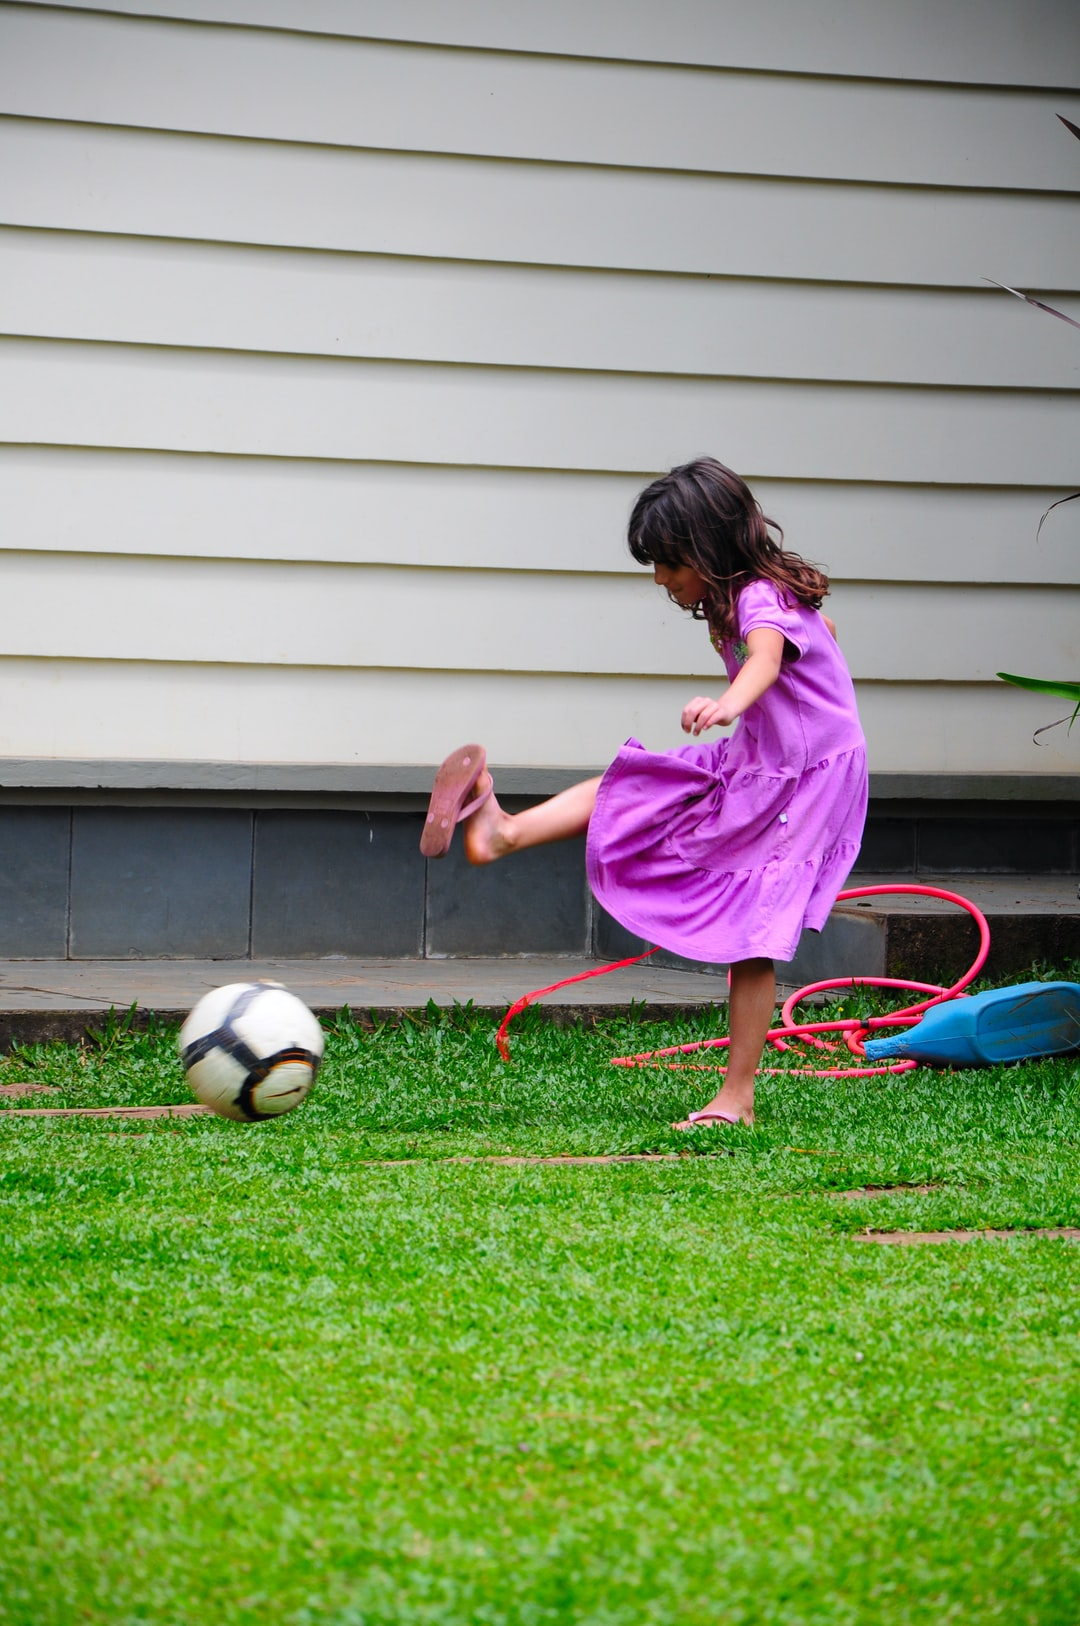 A girl playing at grass